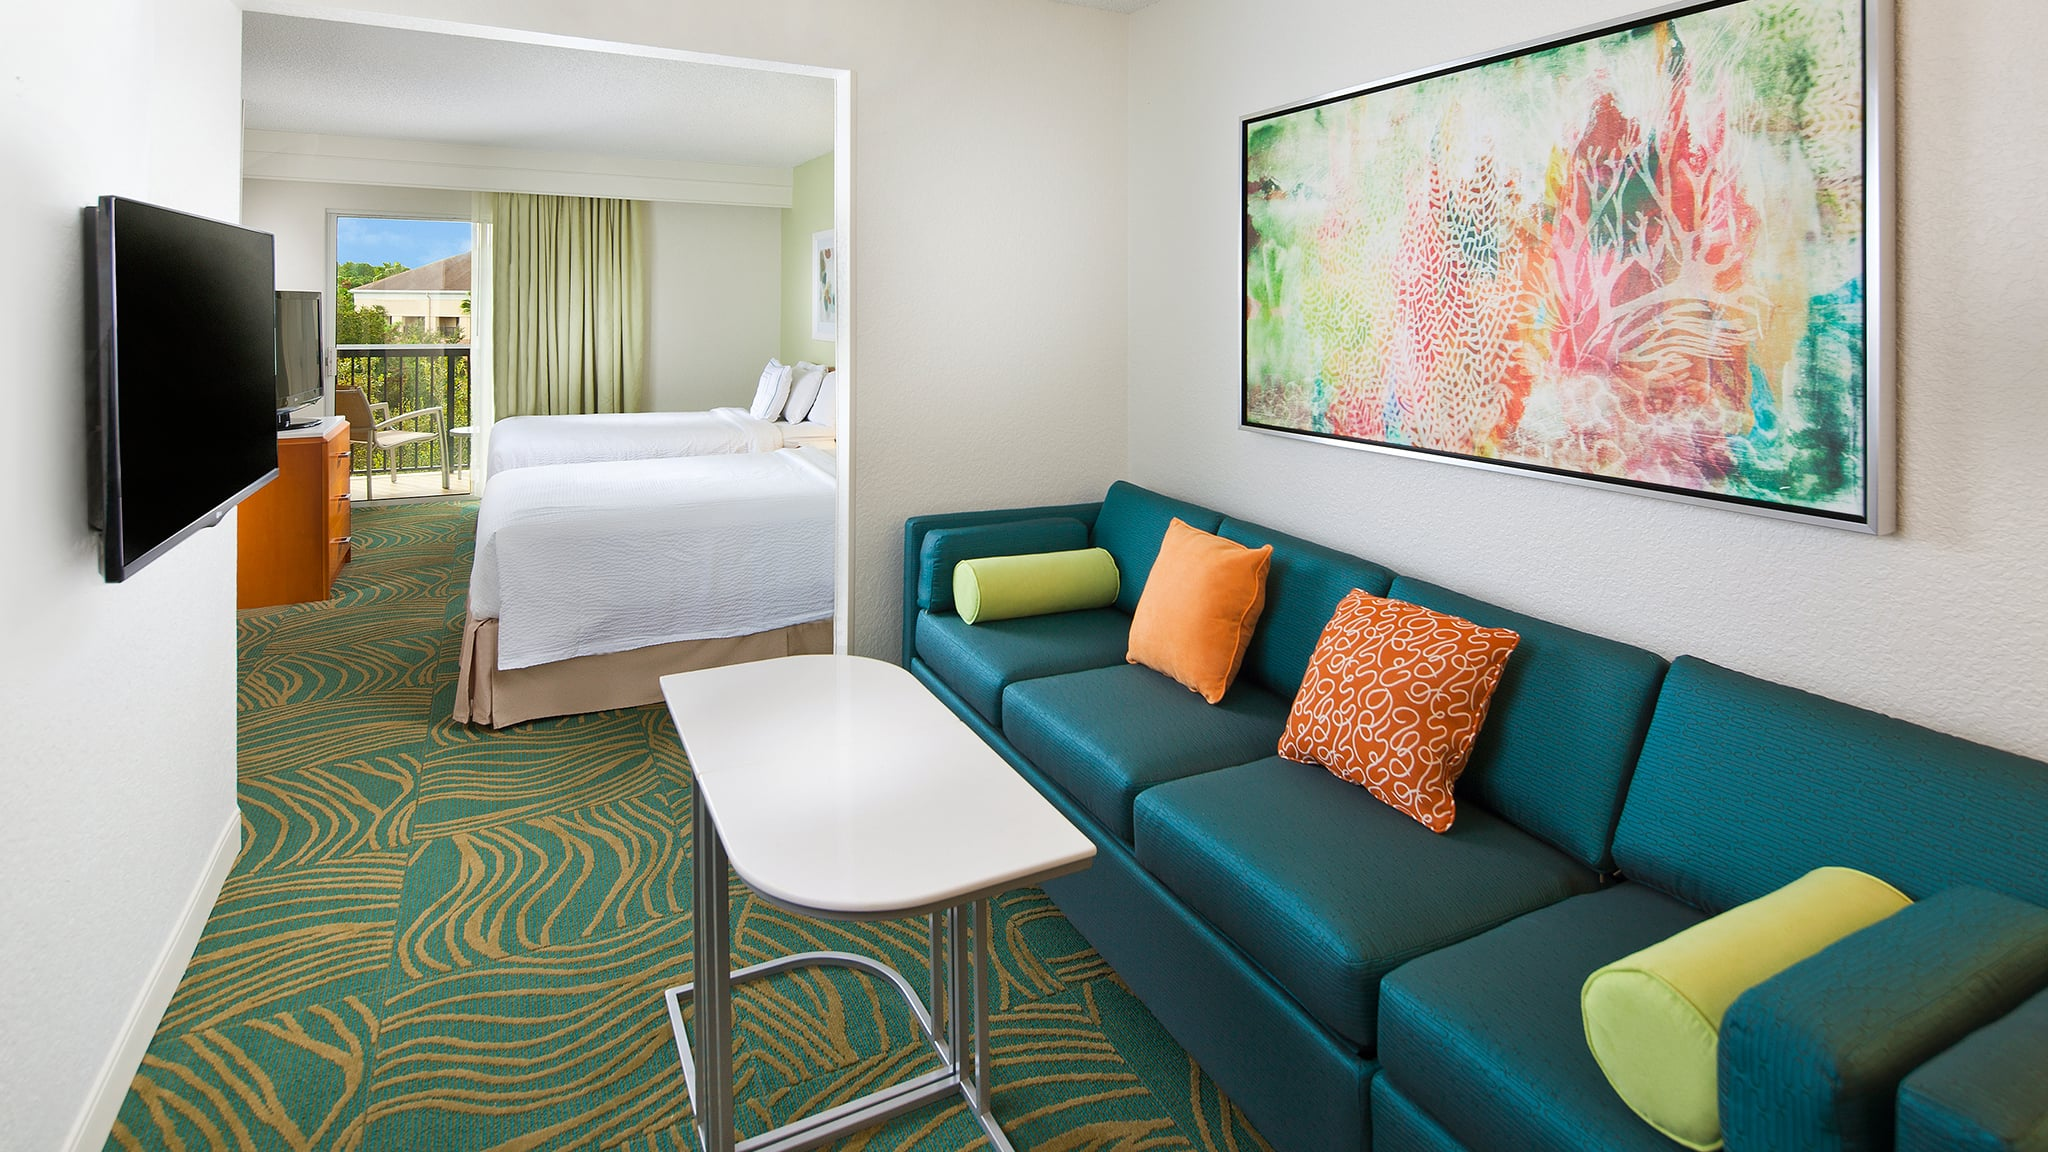 Springhill Suites Orlando Lake Buena Vista In The Marriott Village Fairfield Ct Mount Tv On Wall Home Theater Installation A Sofa With 4 Accent Cushions And 2 Tray Stands Across From Mounted